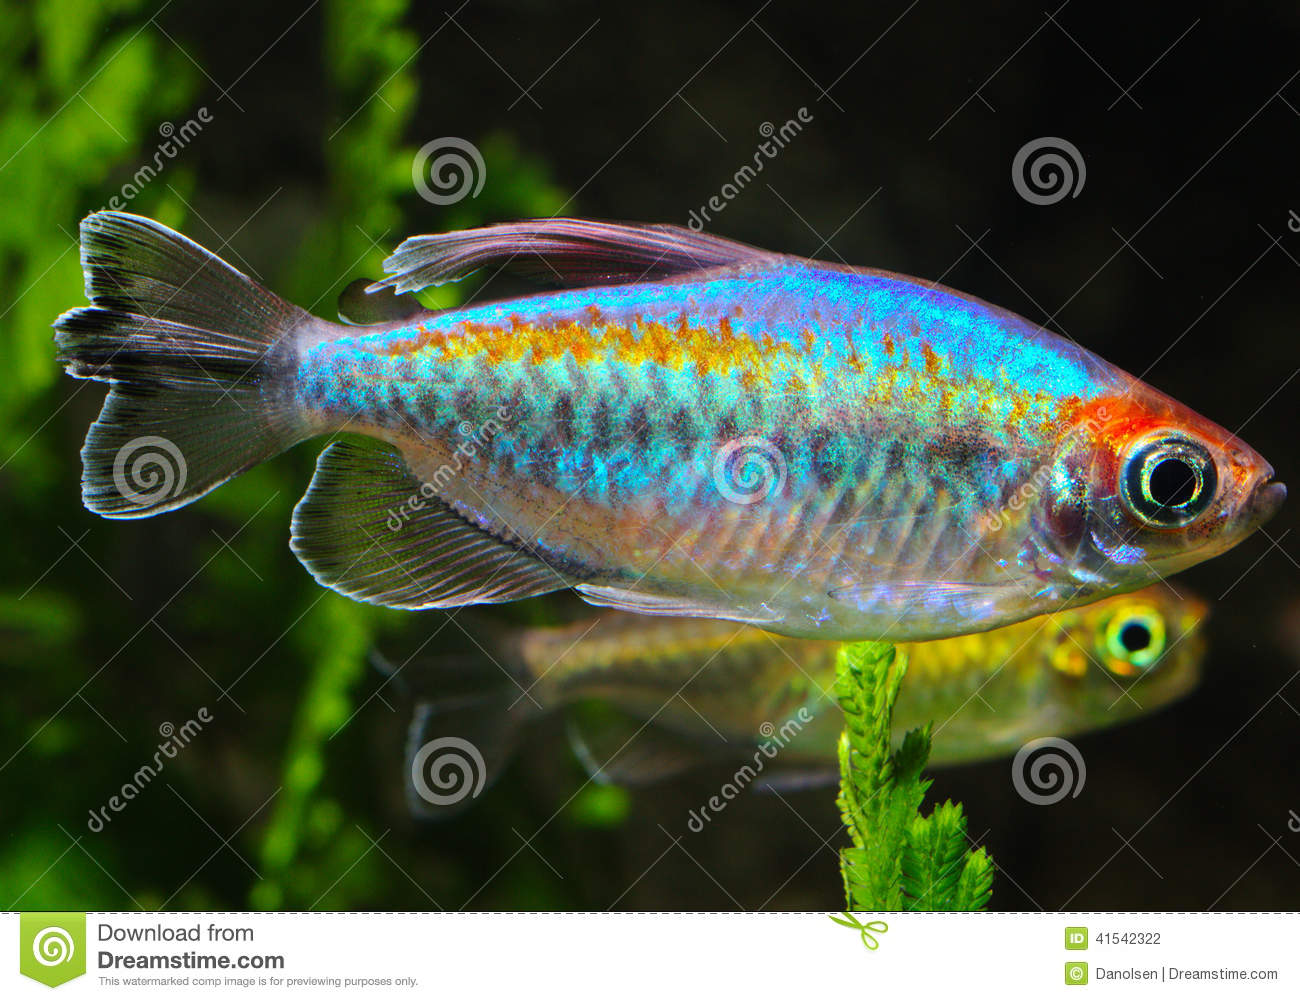 Phenacogrammus interruptus stock photo image of splendens for Tetra fish tanks